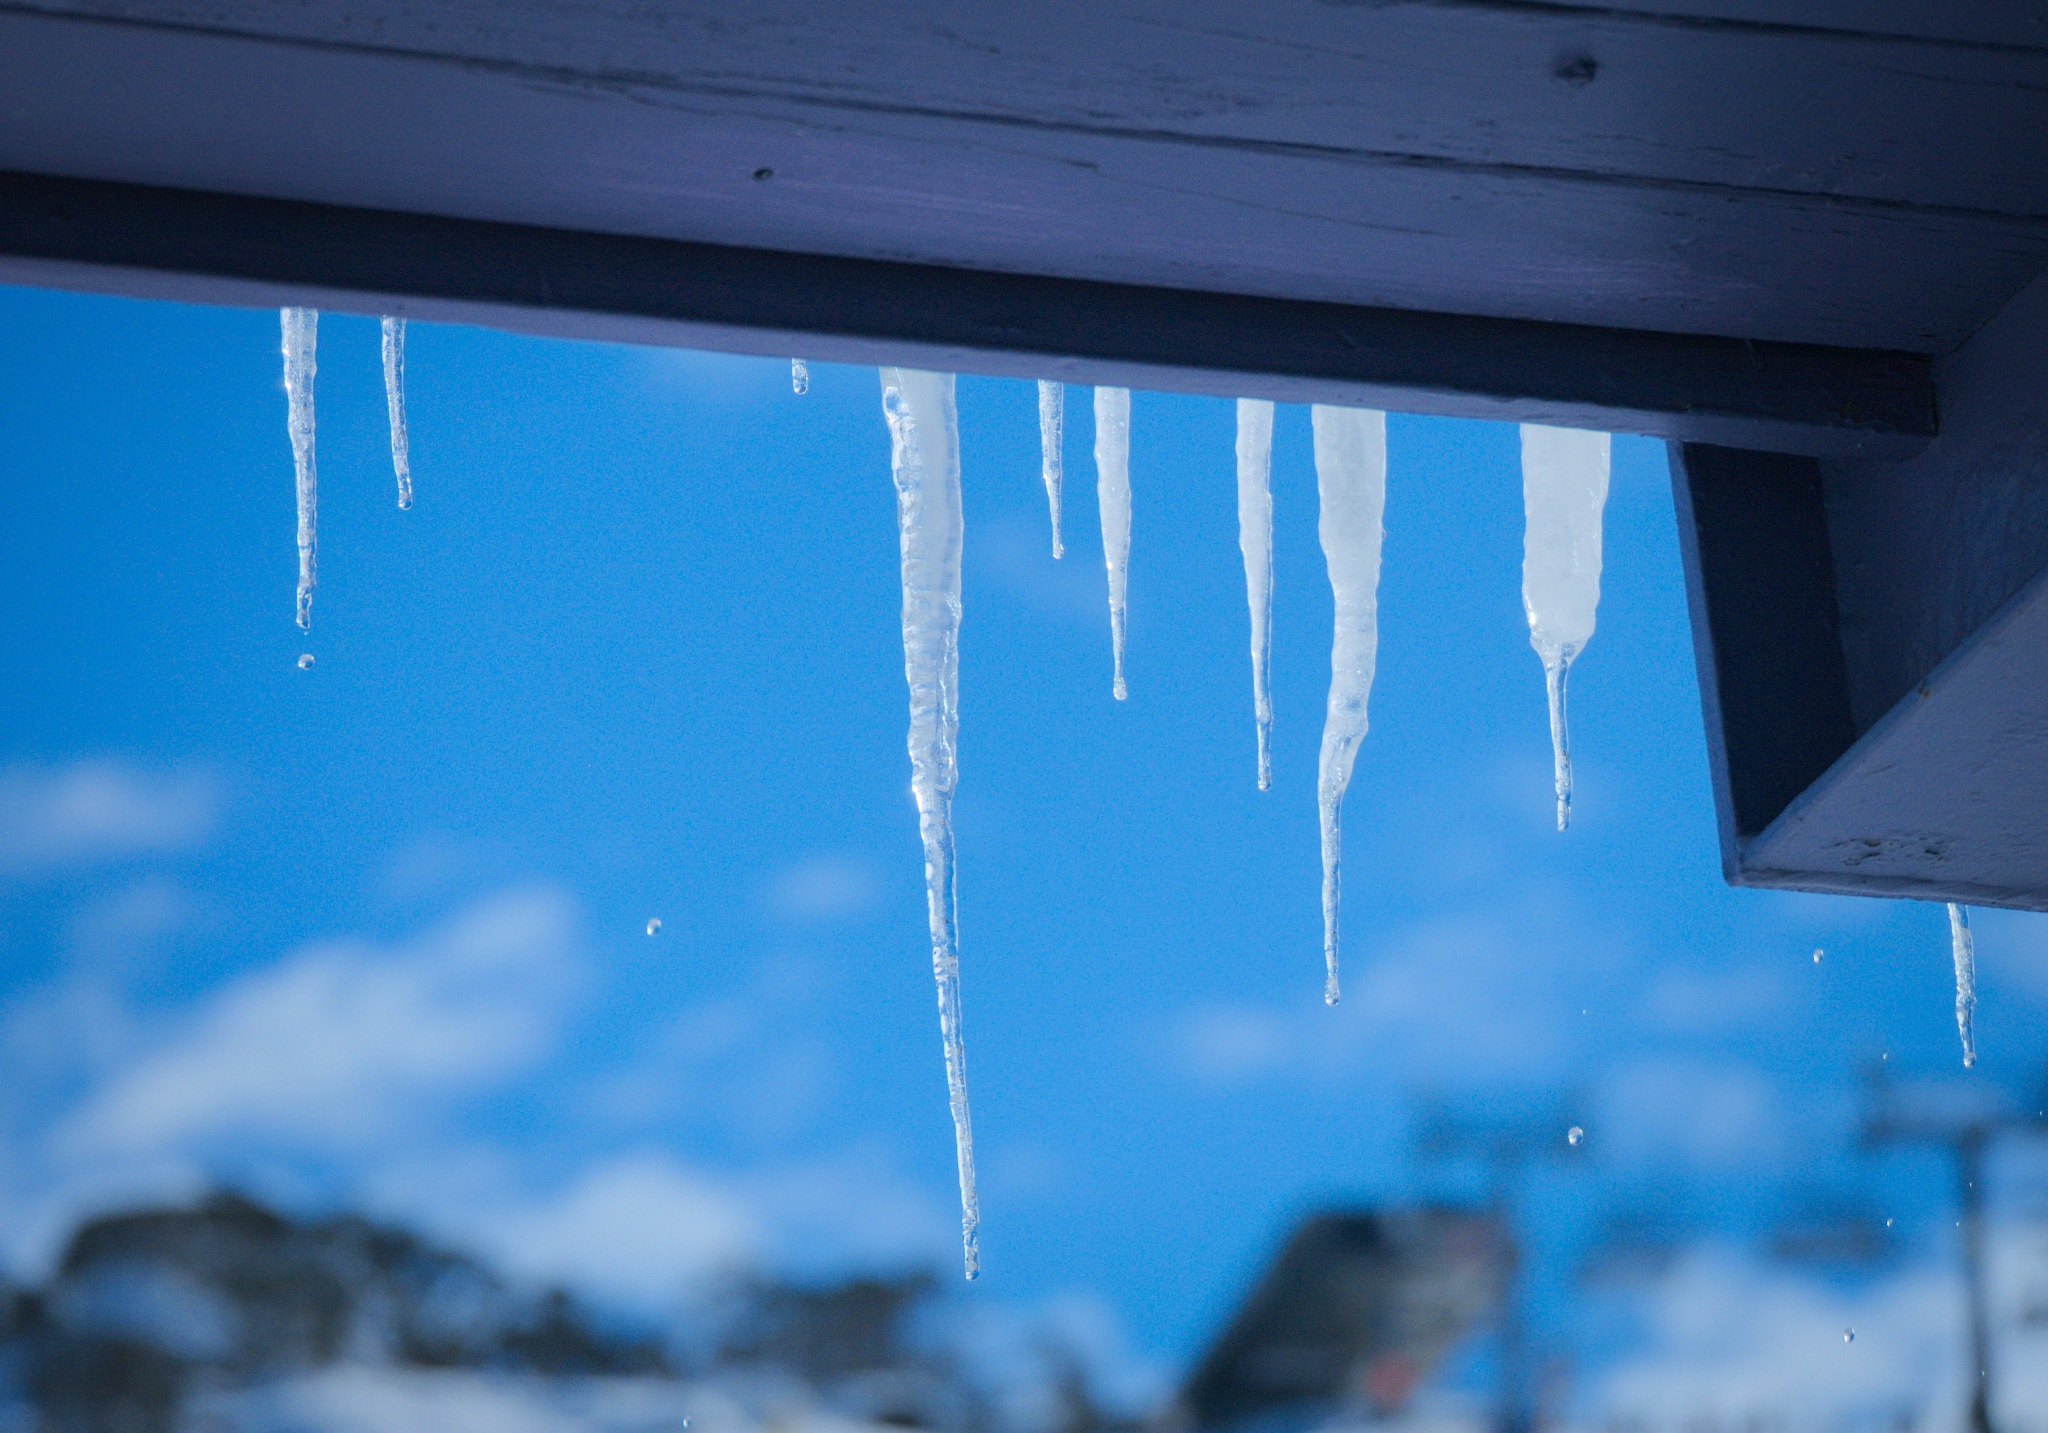 Icicles, mid-melt by TonyG